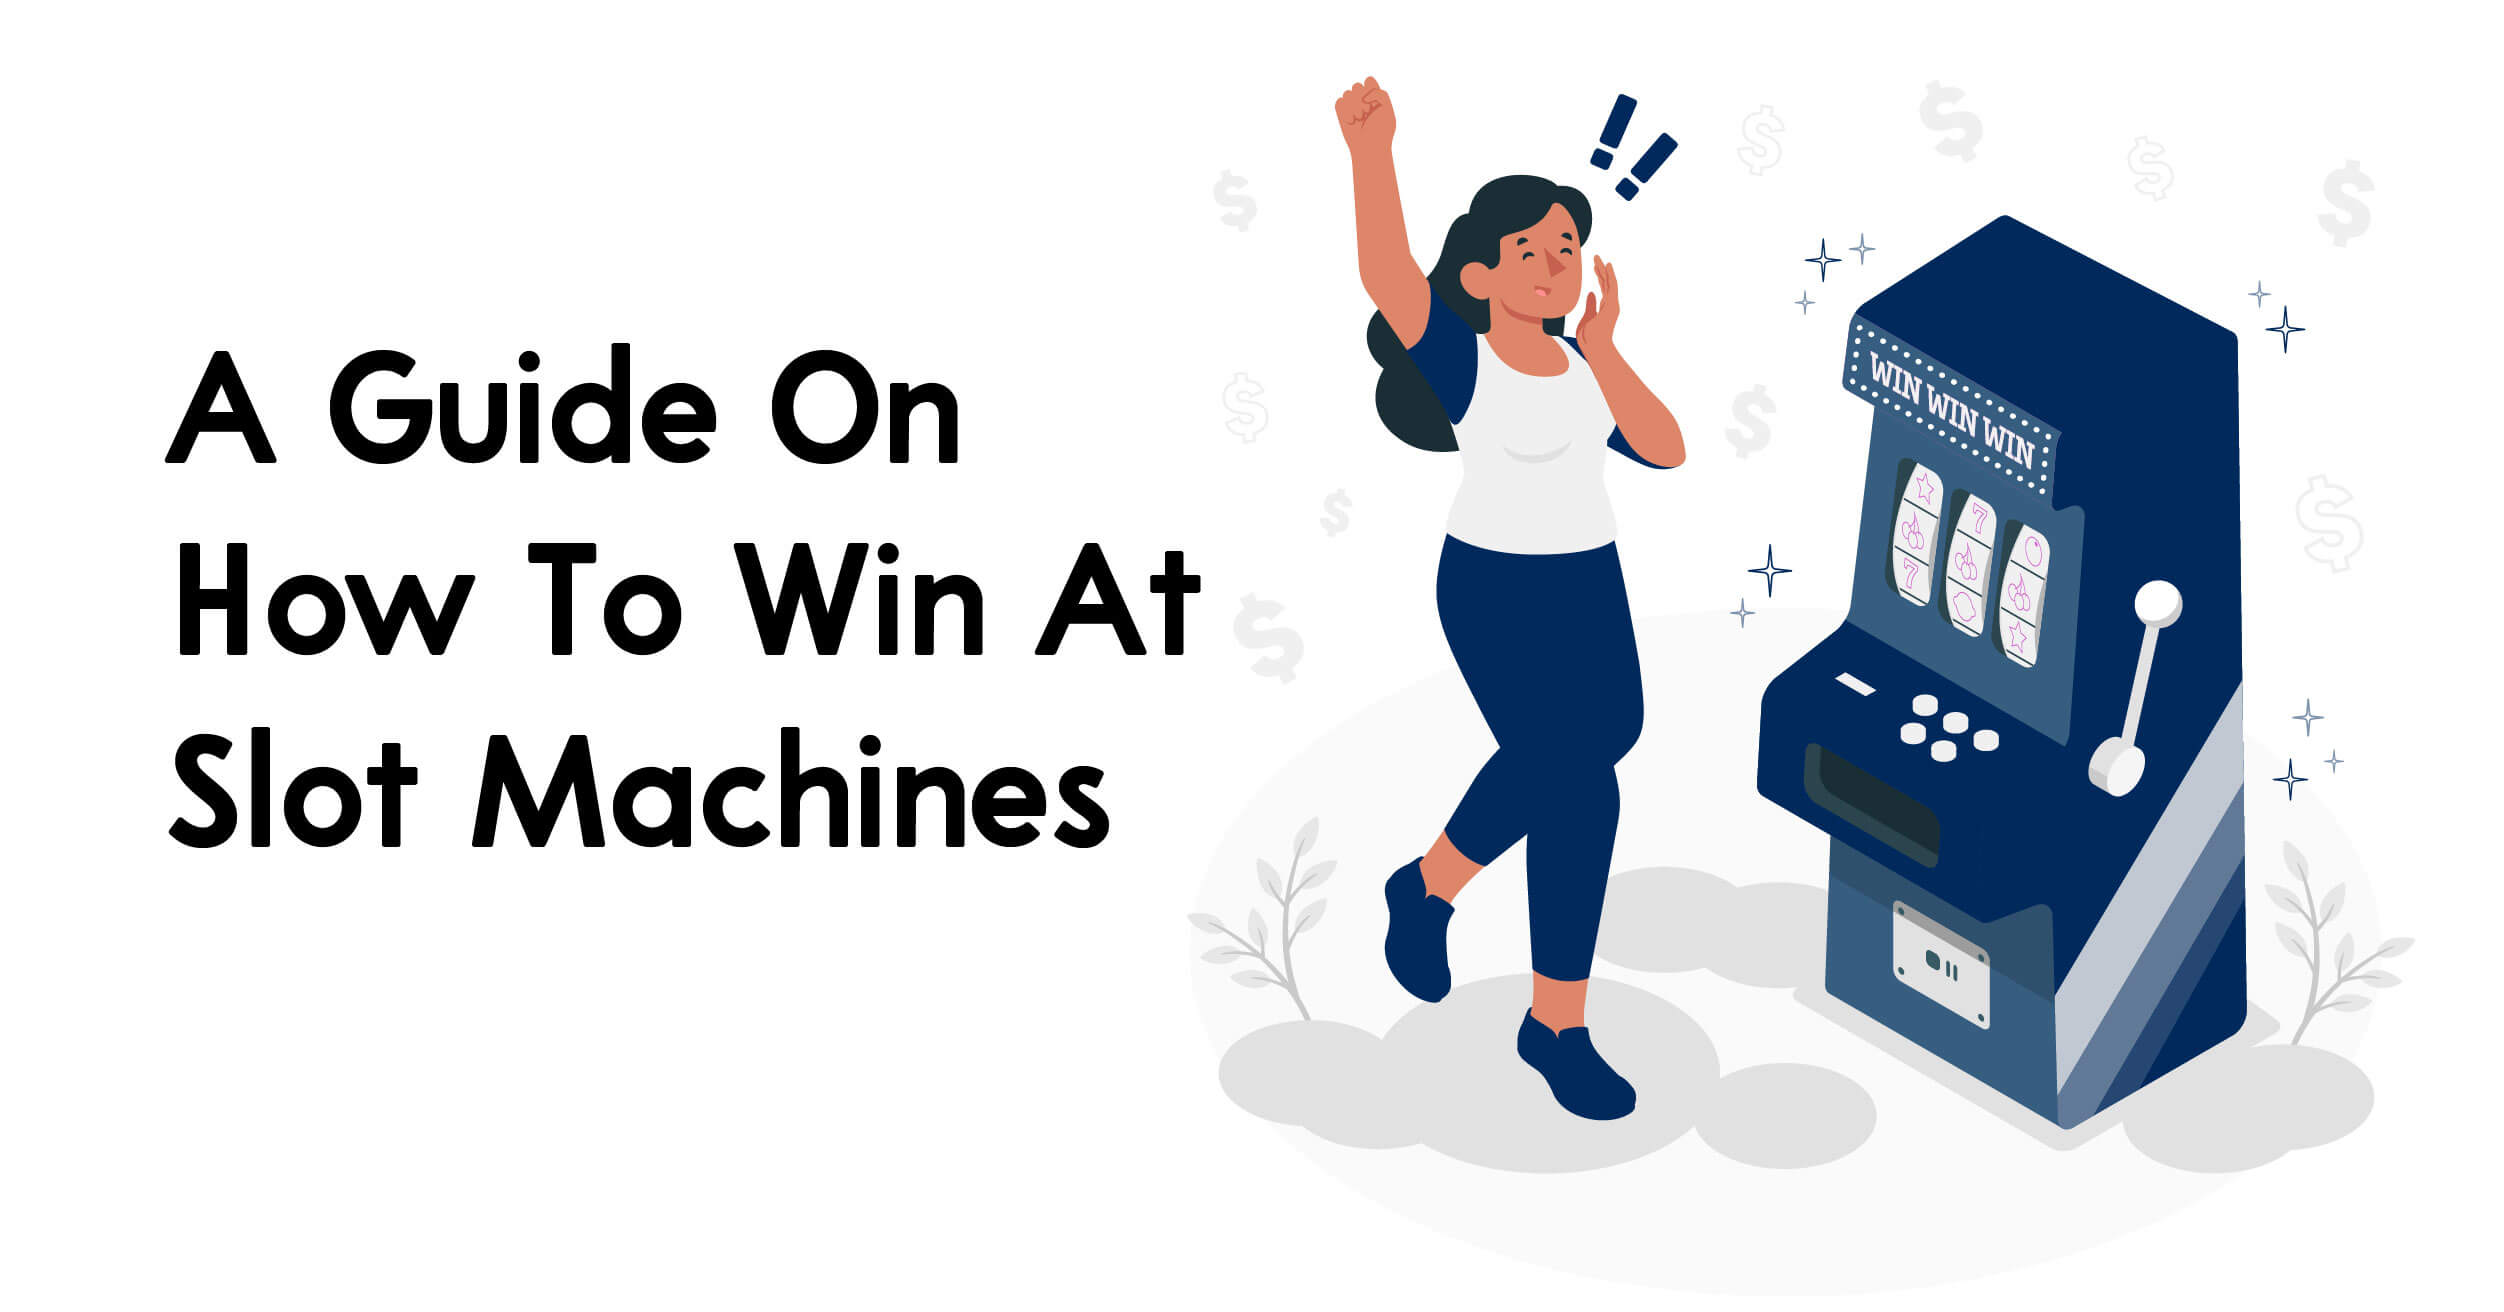 A Guide On How To Win At Slot Machines